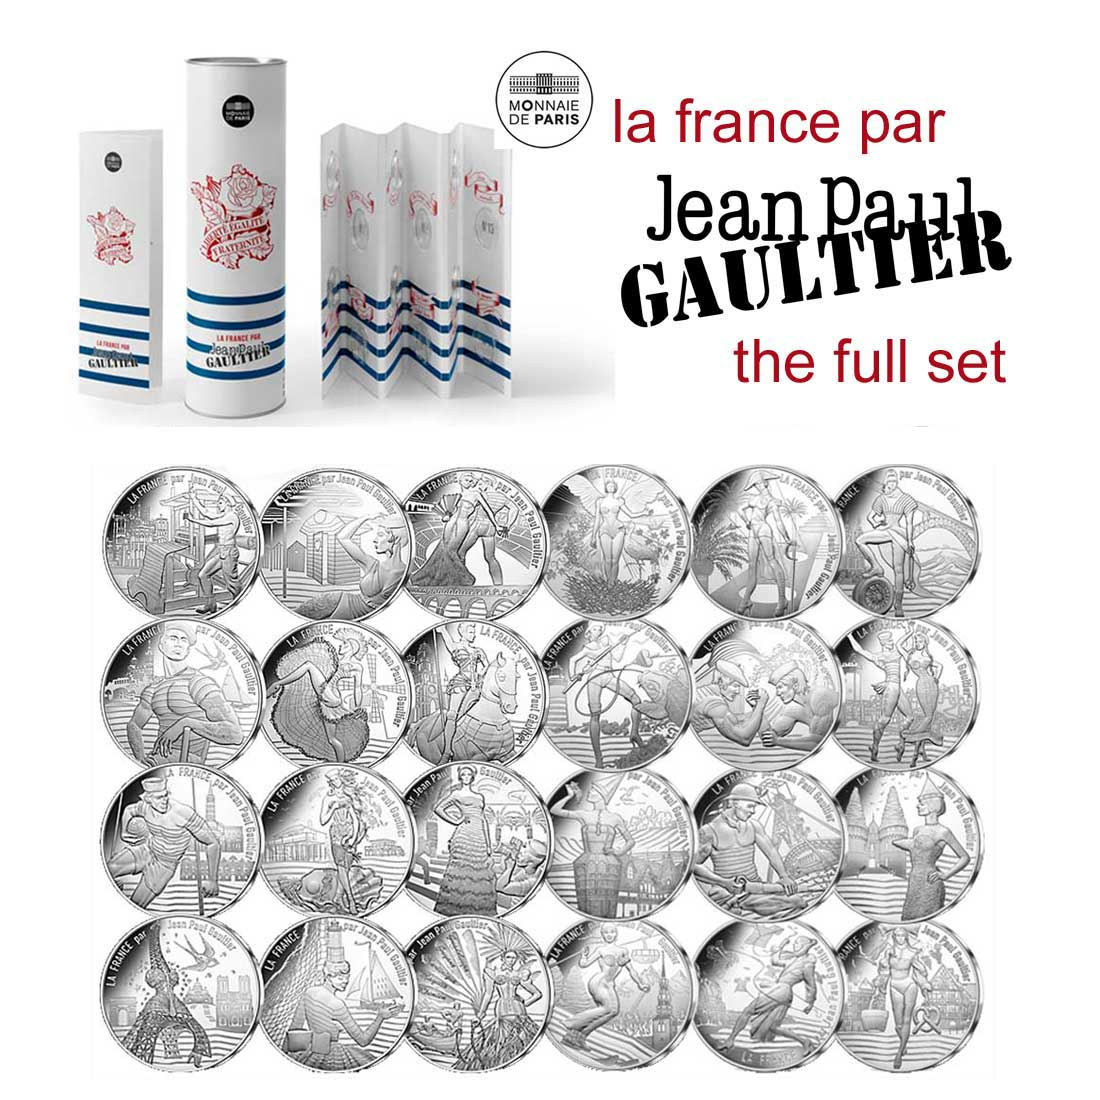 France by Jean Paul Gaultier 2017 Box set of twenty-four 10€ silver coins